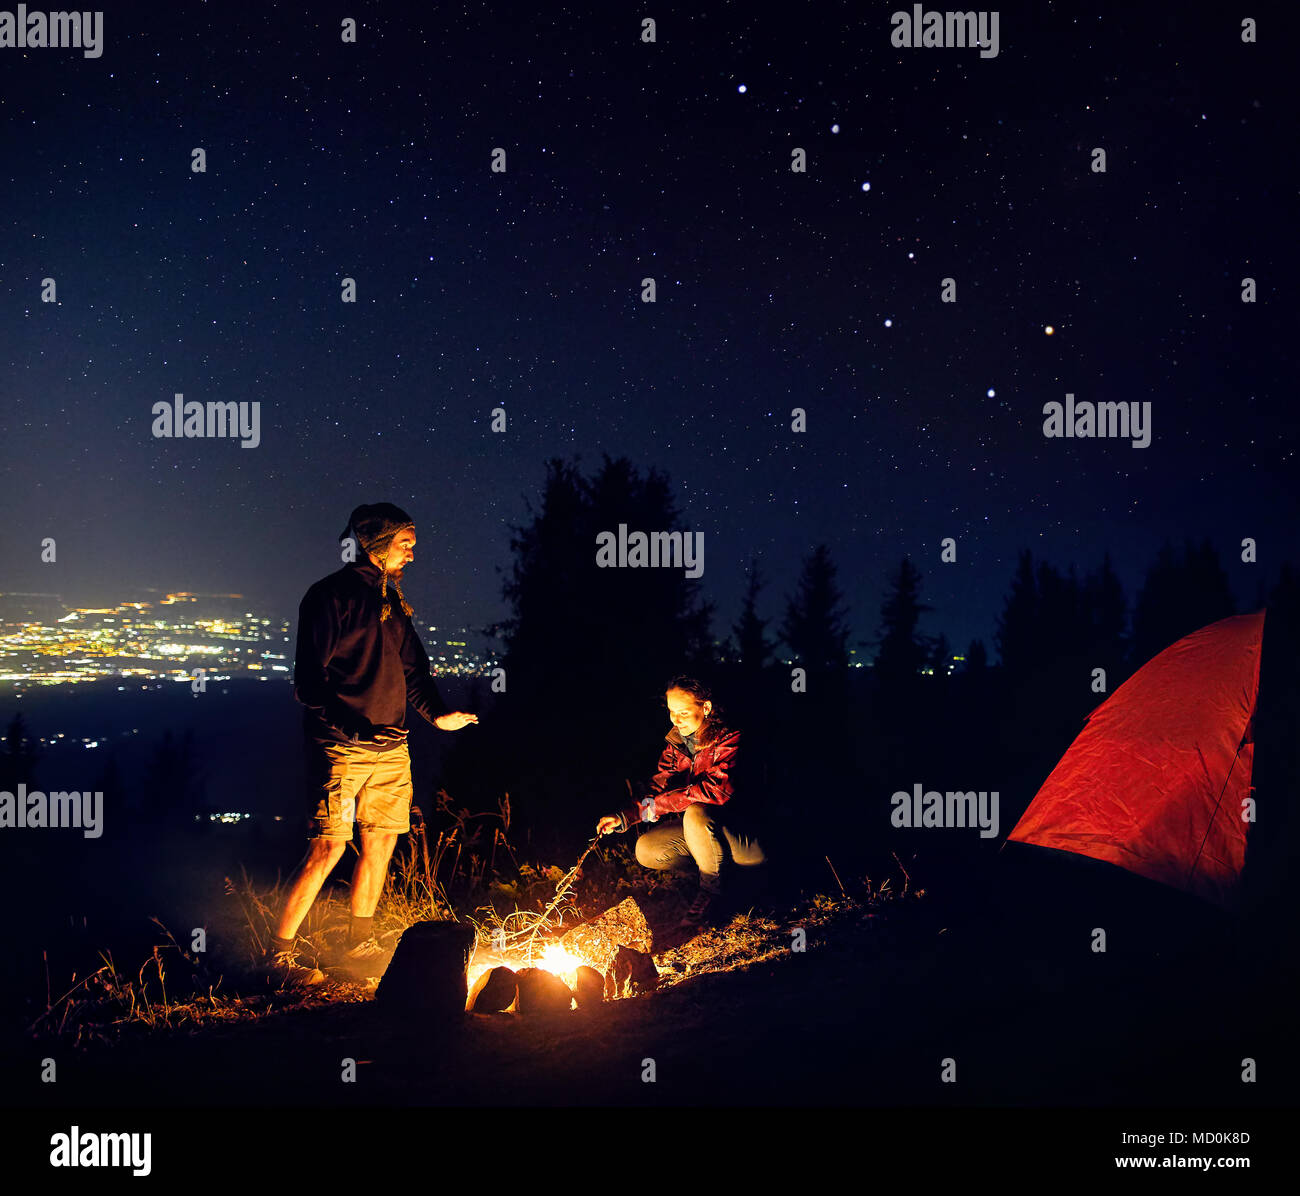 Happy couple hikers warm they hands near campfire under night sky with stars and city lights at background. - Stock Image